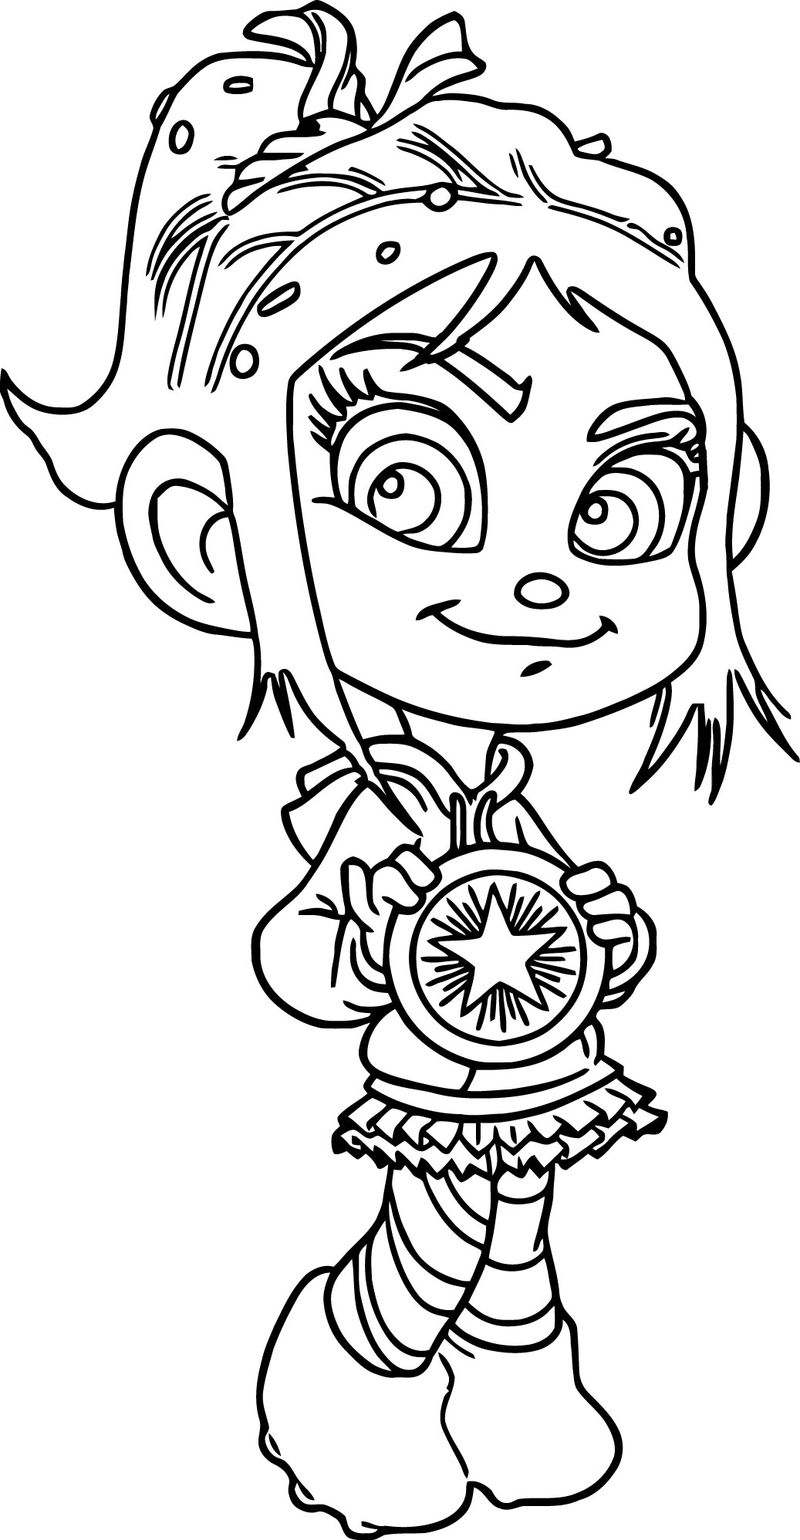 vanellope wreck it ralph coloring pages